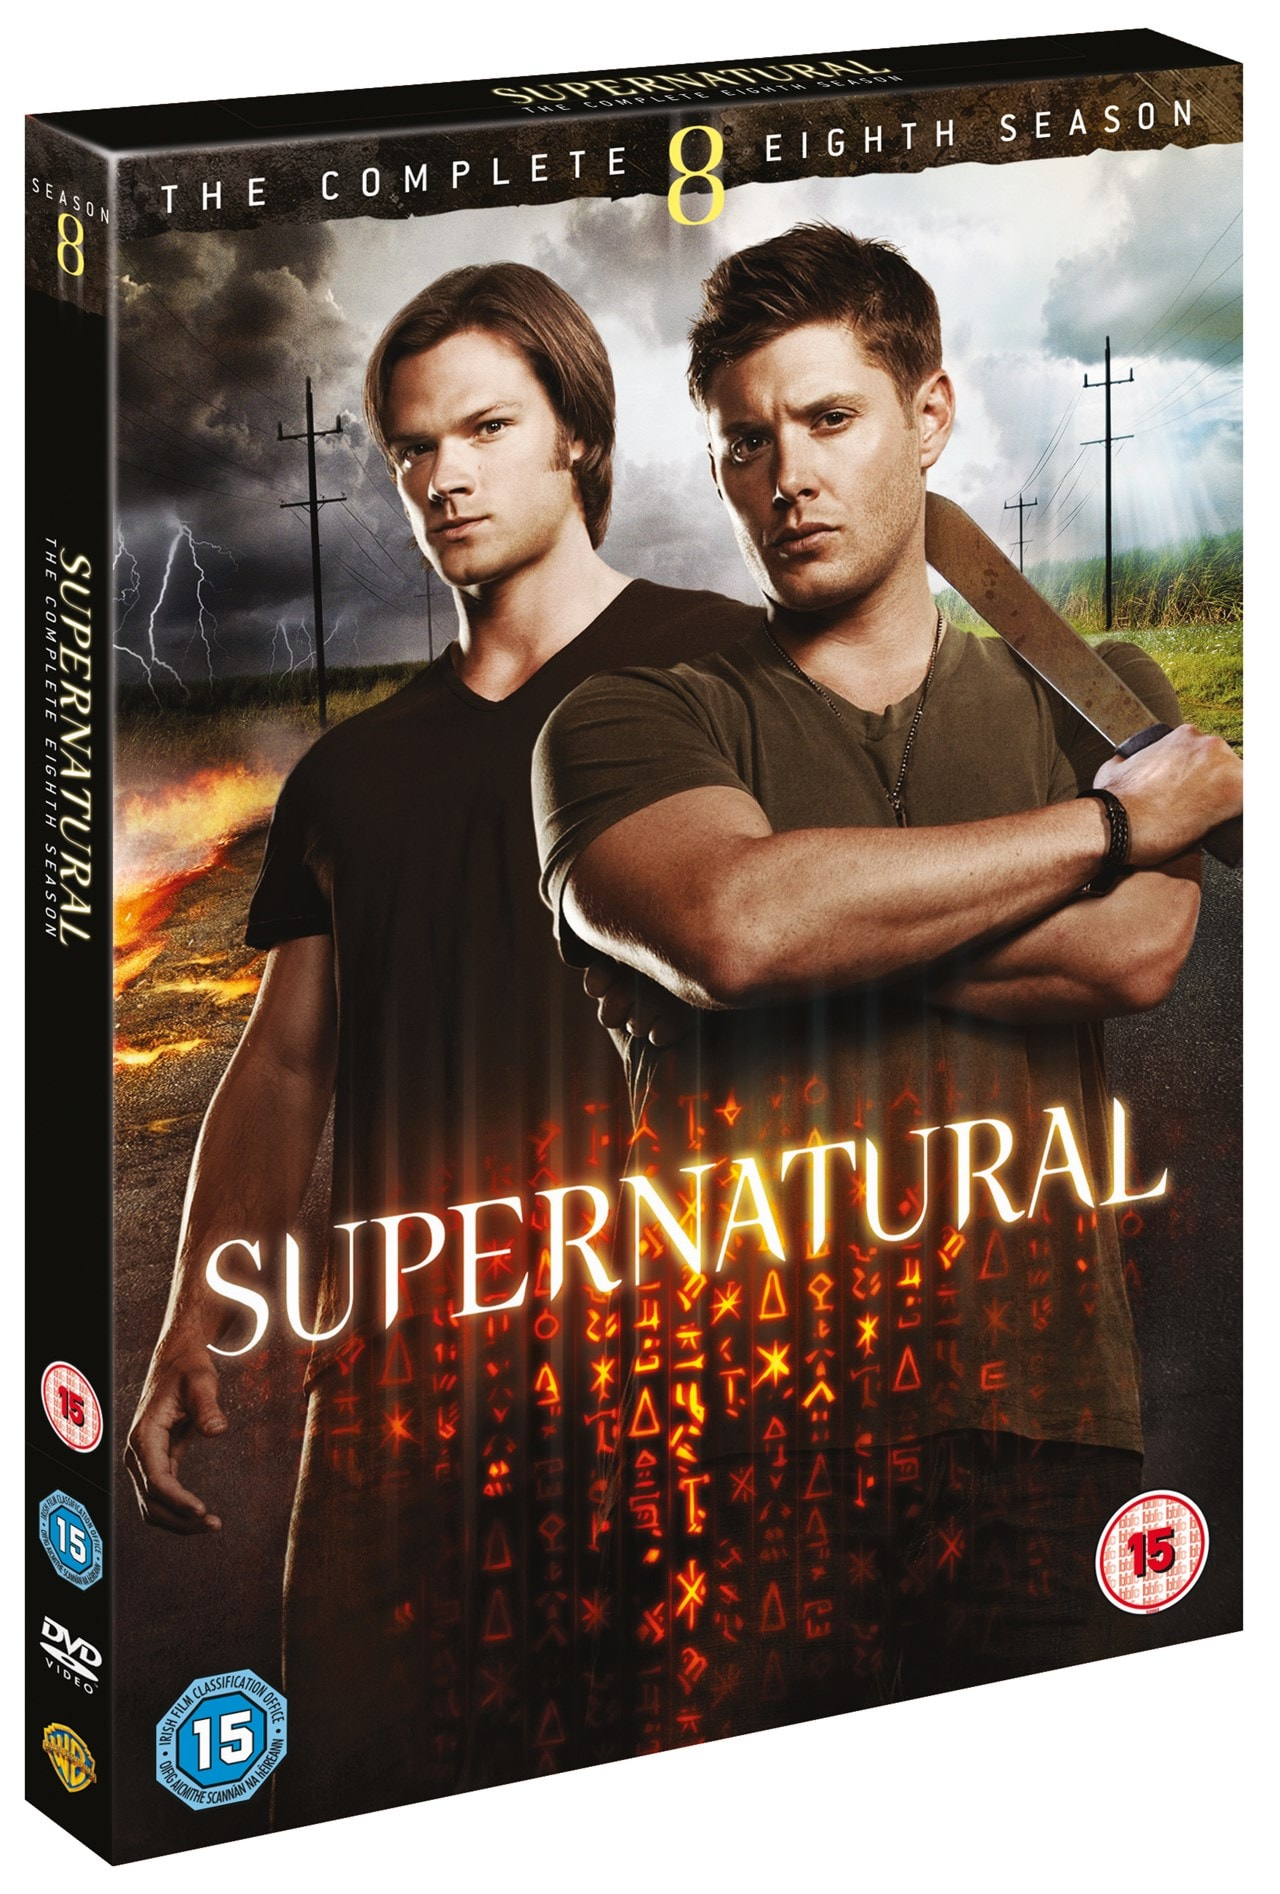 Supernatural: The Complete Eighth Season - 2